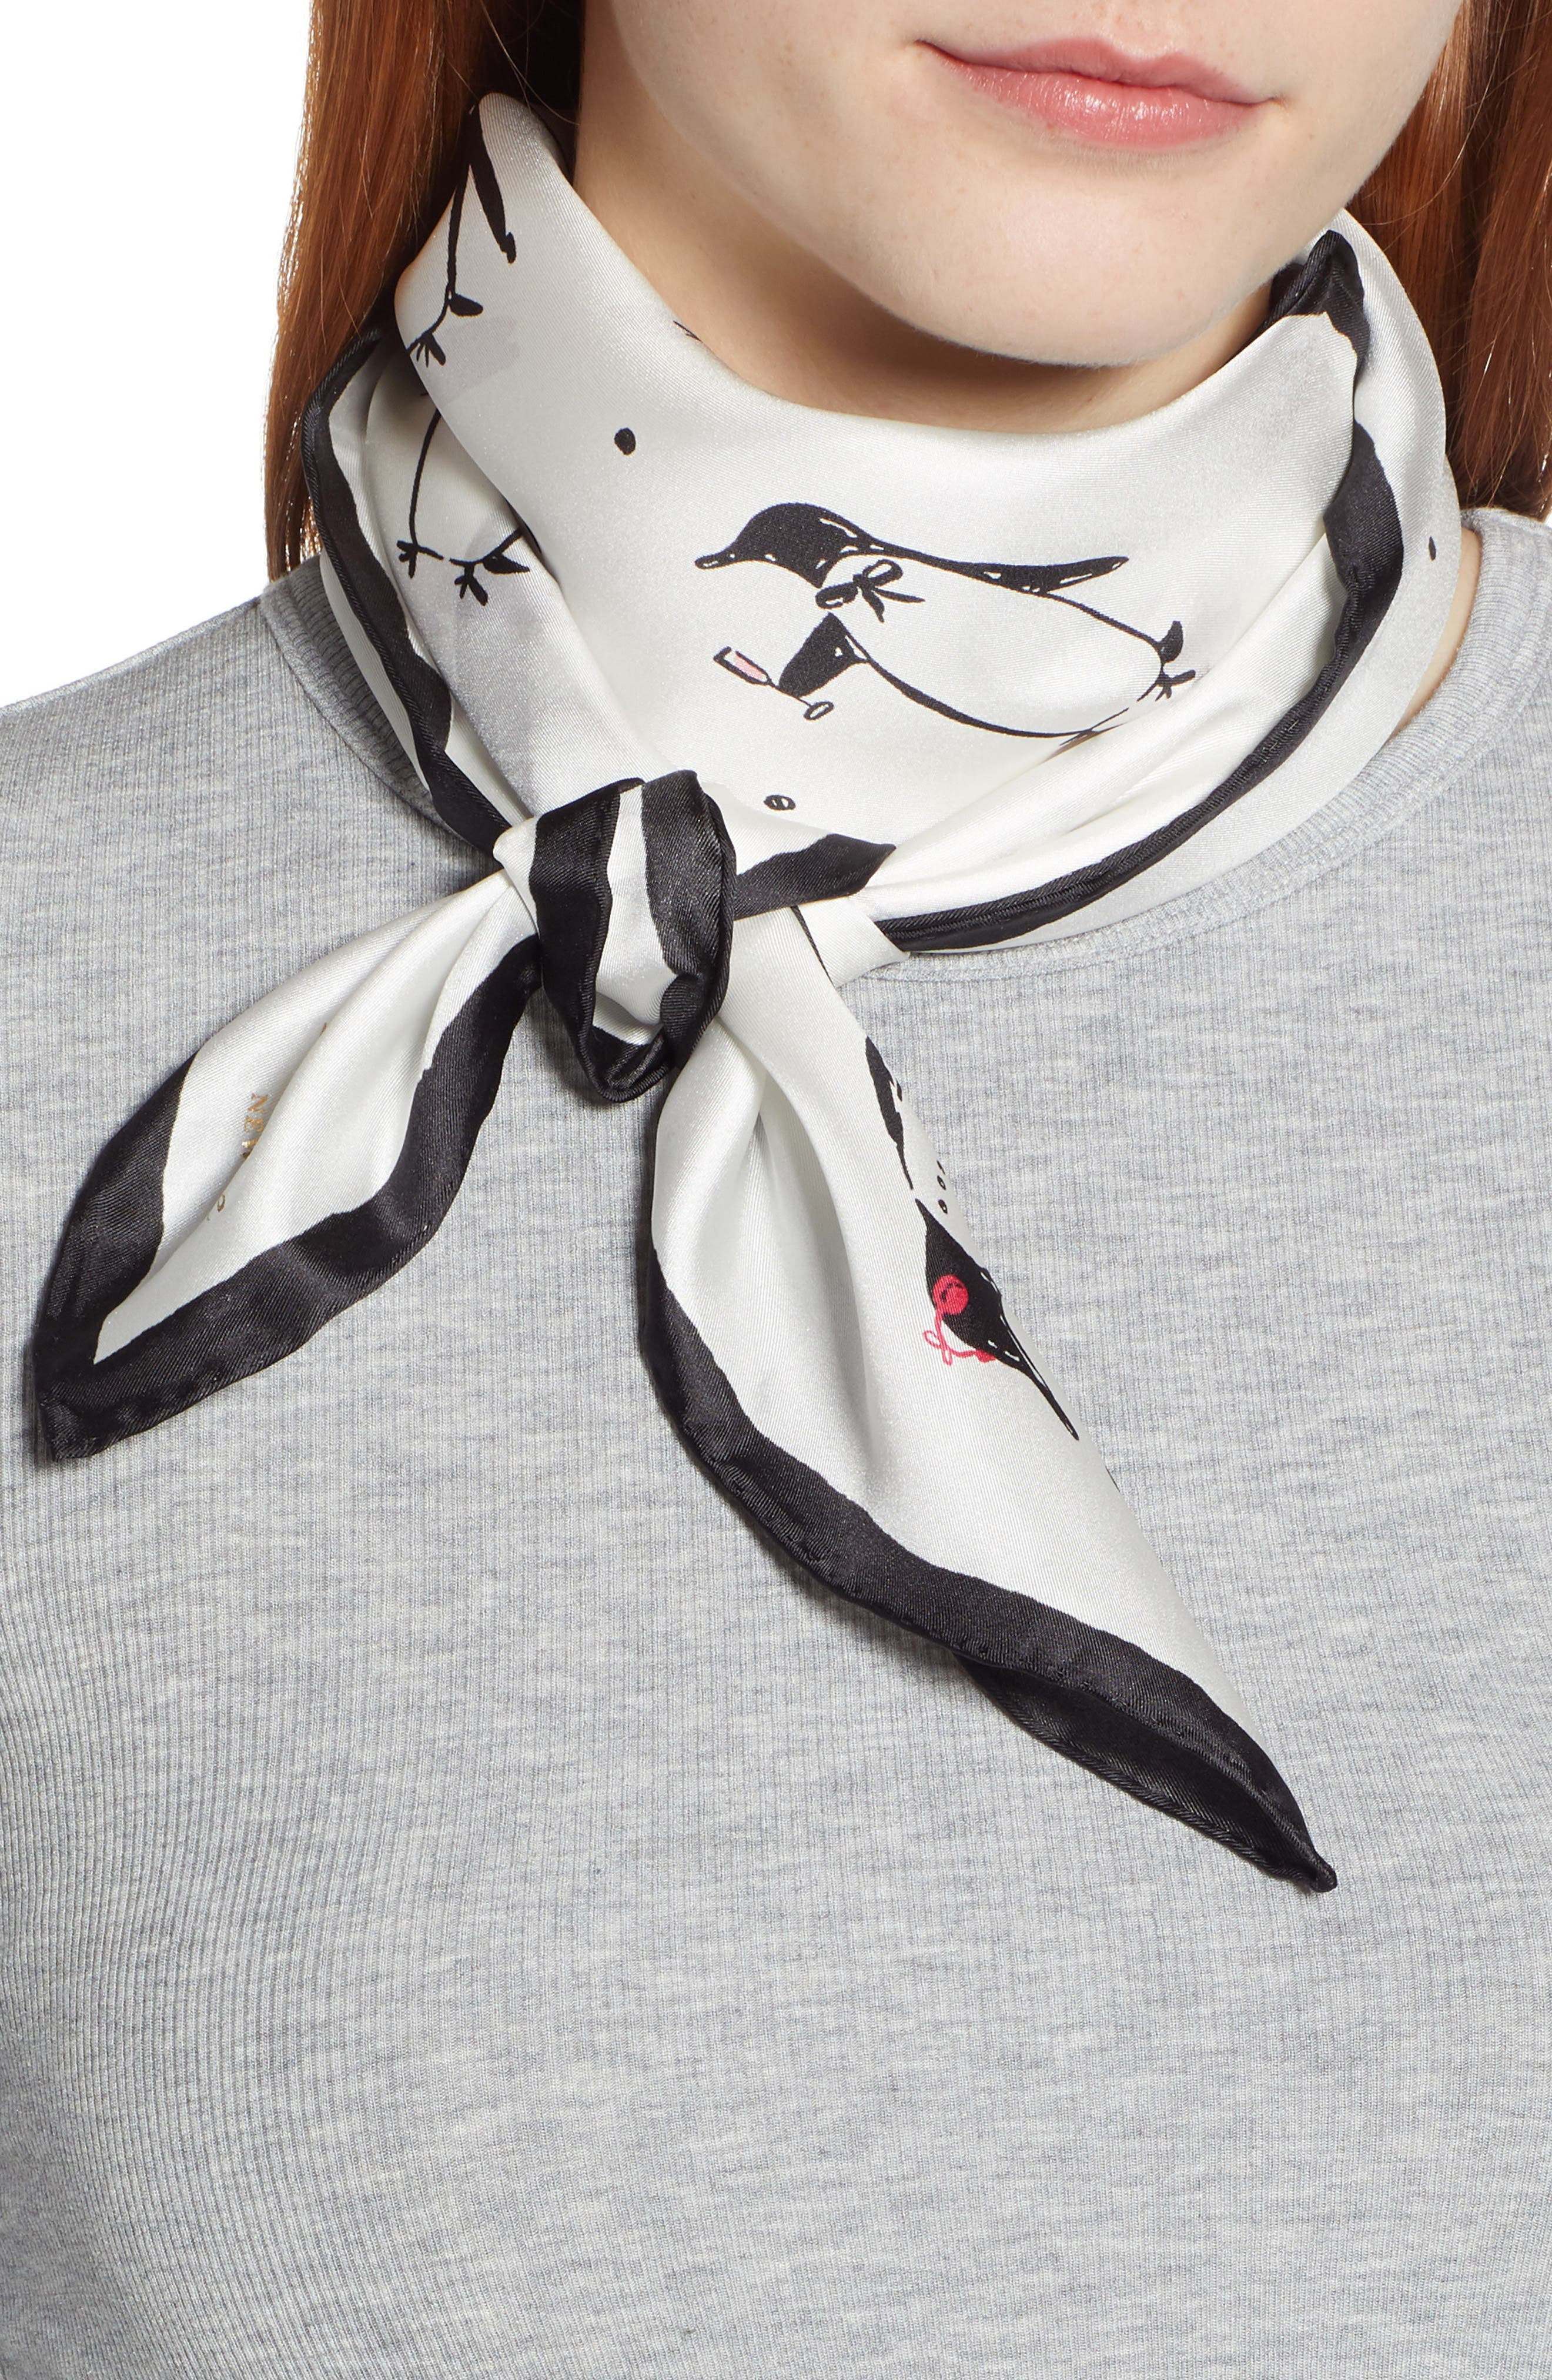 penguin silk square scarf,                             Main thumbnail 1, color,                             CREAM